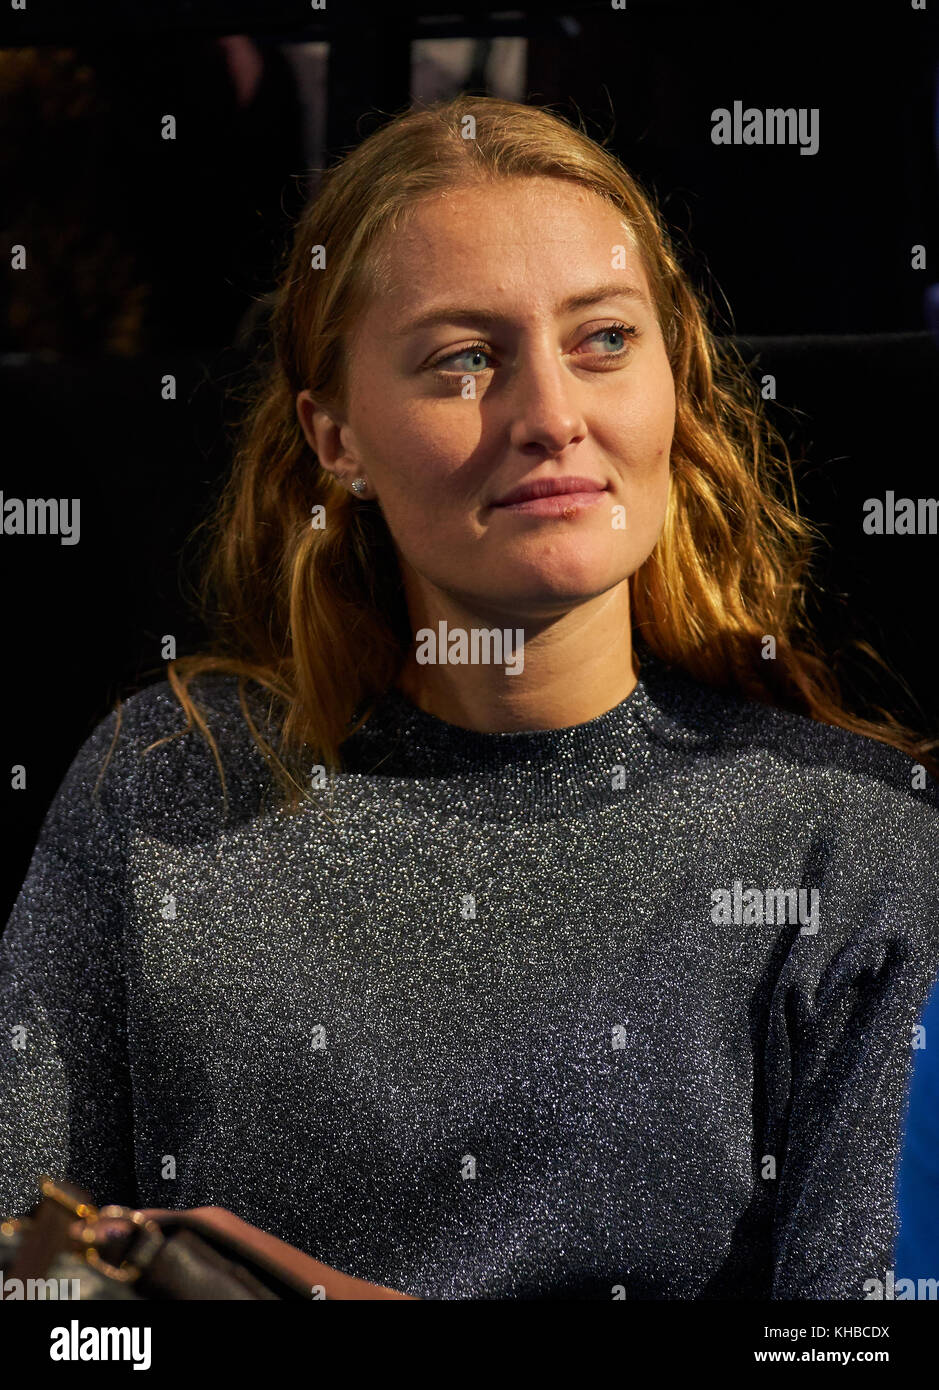 Atp Tennis London November 15 2017 Dominic Thiem Aut Freundin Und Tennisprofi Kristina Mladenovic Fra In Der Ausbildung Und Vorbereitung Auf Das Match Dominic Thiem Aut Gegen Pablo Carreno Busta Esp An